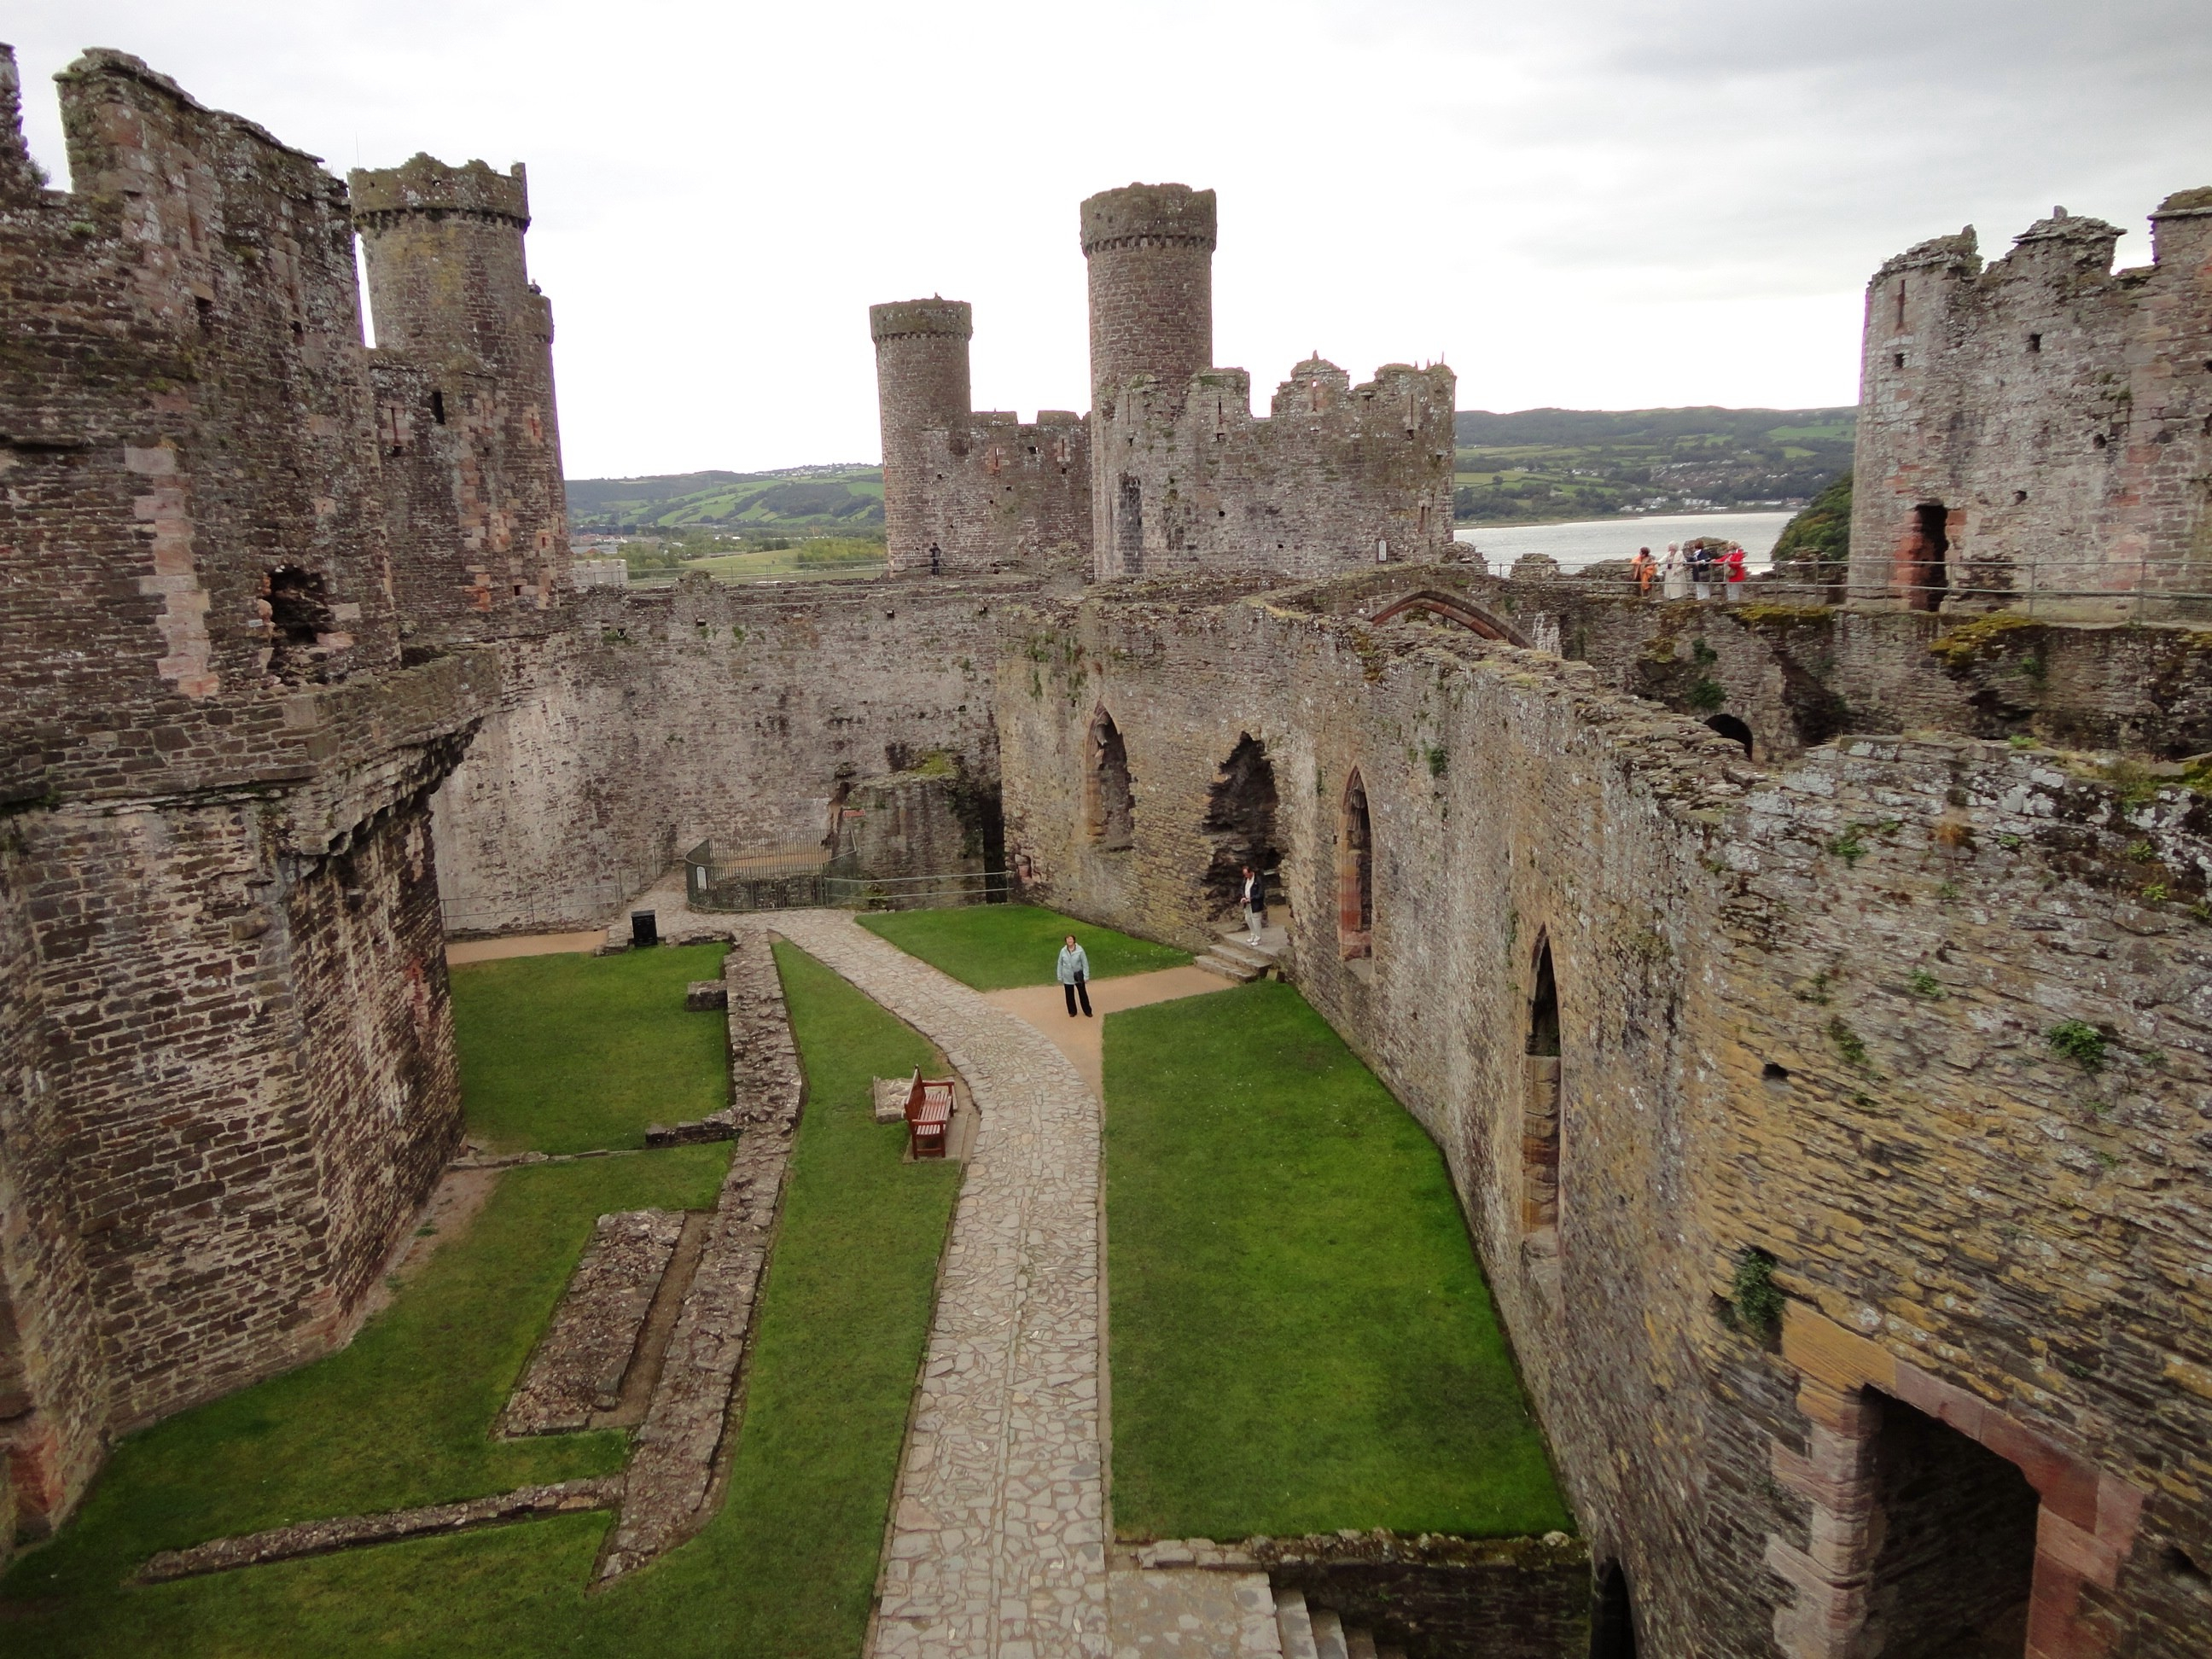 essays medieval castles Not all castles were extravagant fortresses that housed kings and all his subjects many castles were just built for the lord, his family and a few servants other castles that were not well protected or had no threat of attack were called fortified.